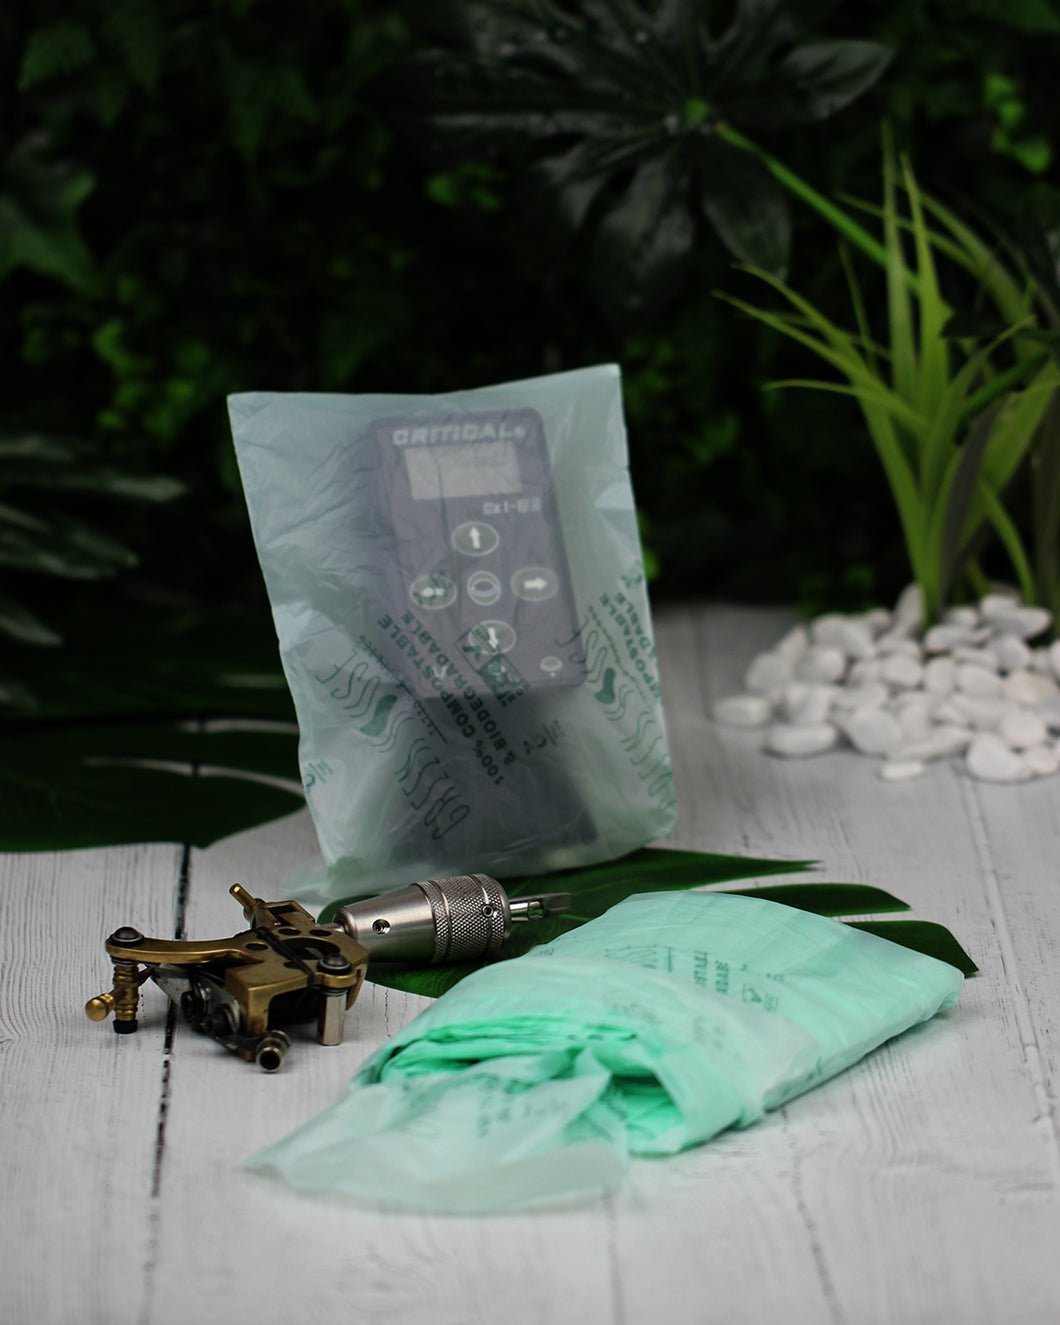 Green House Tattoo Supplies machine power supply bags plant based plastic free